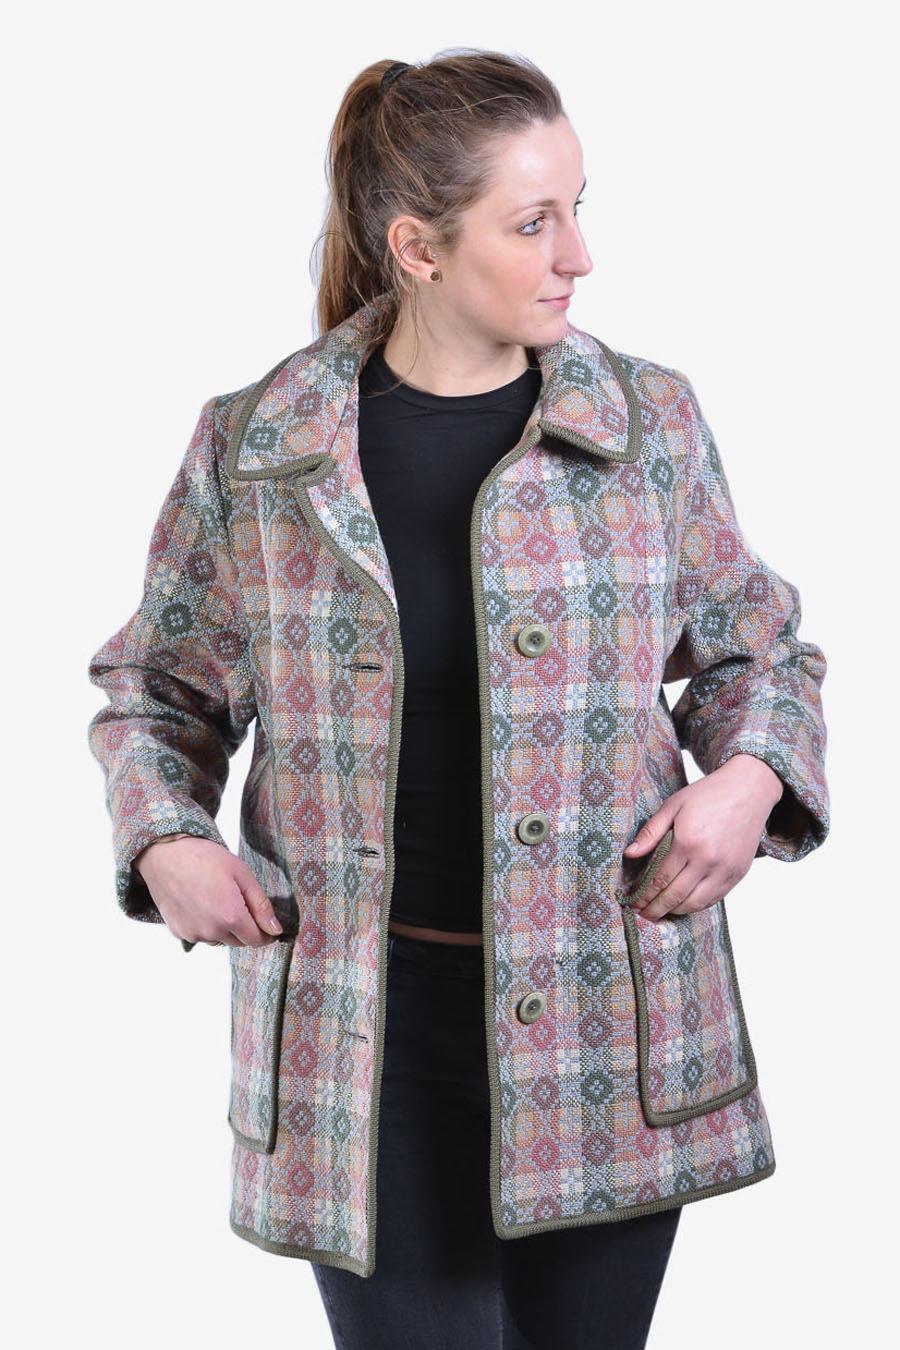 Vintage 1960's Welsh Woollens coat